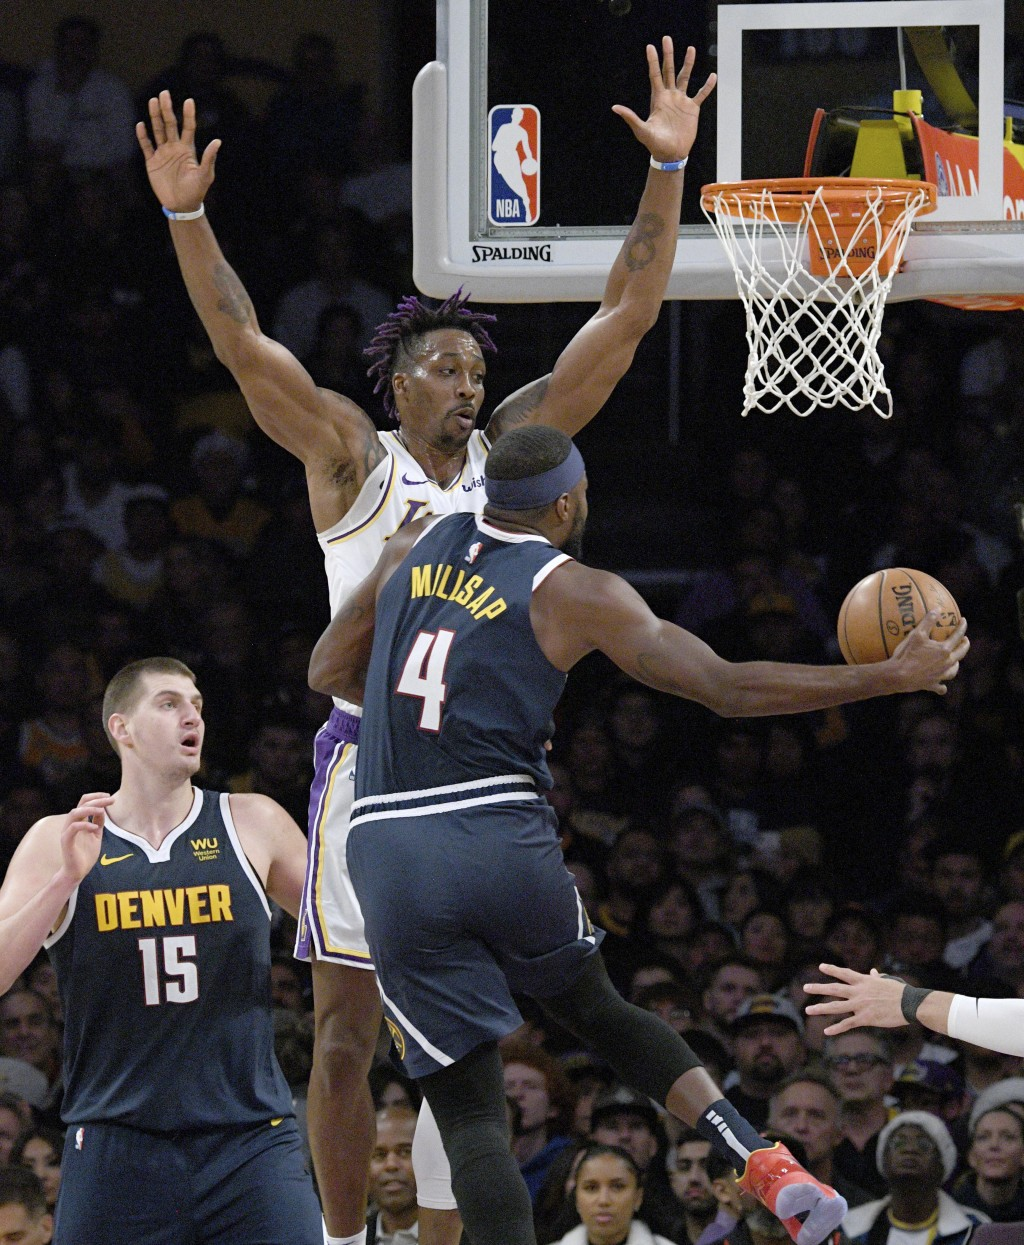 Los Angeles Lakers center Dwight Howard, center, defends the basket against Denver Nuggets forward Paul Millsap, right, during the first half of an NB...